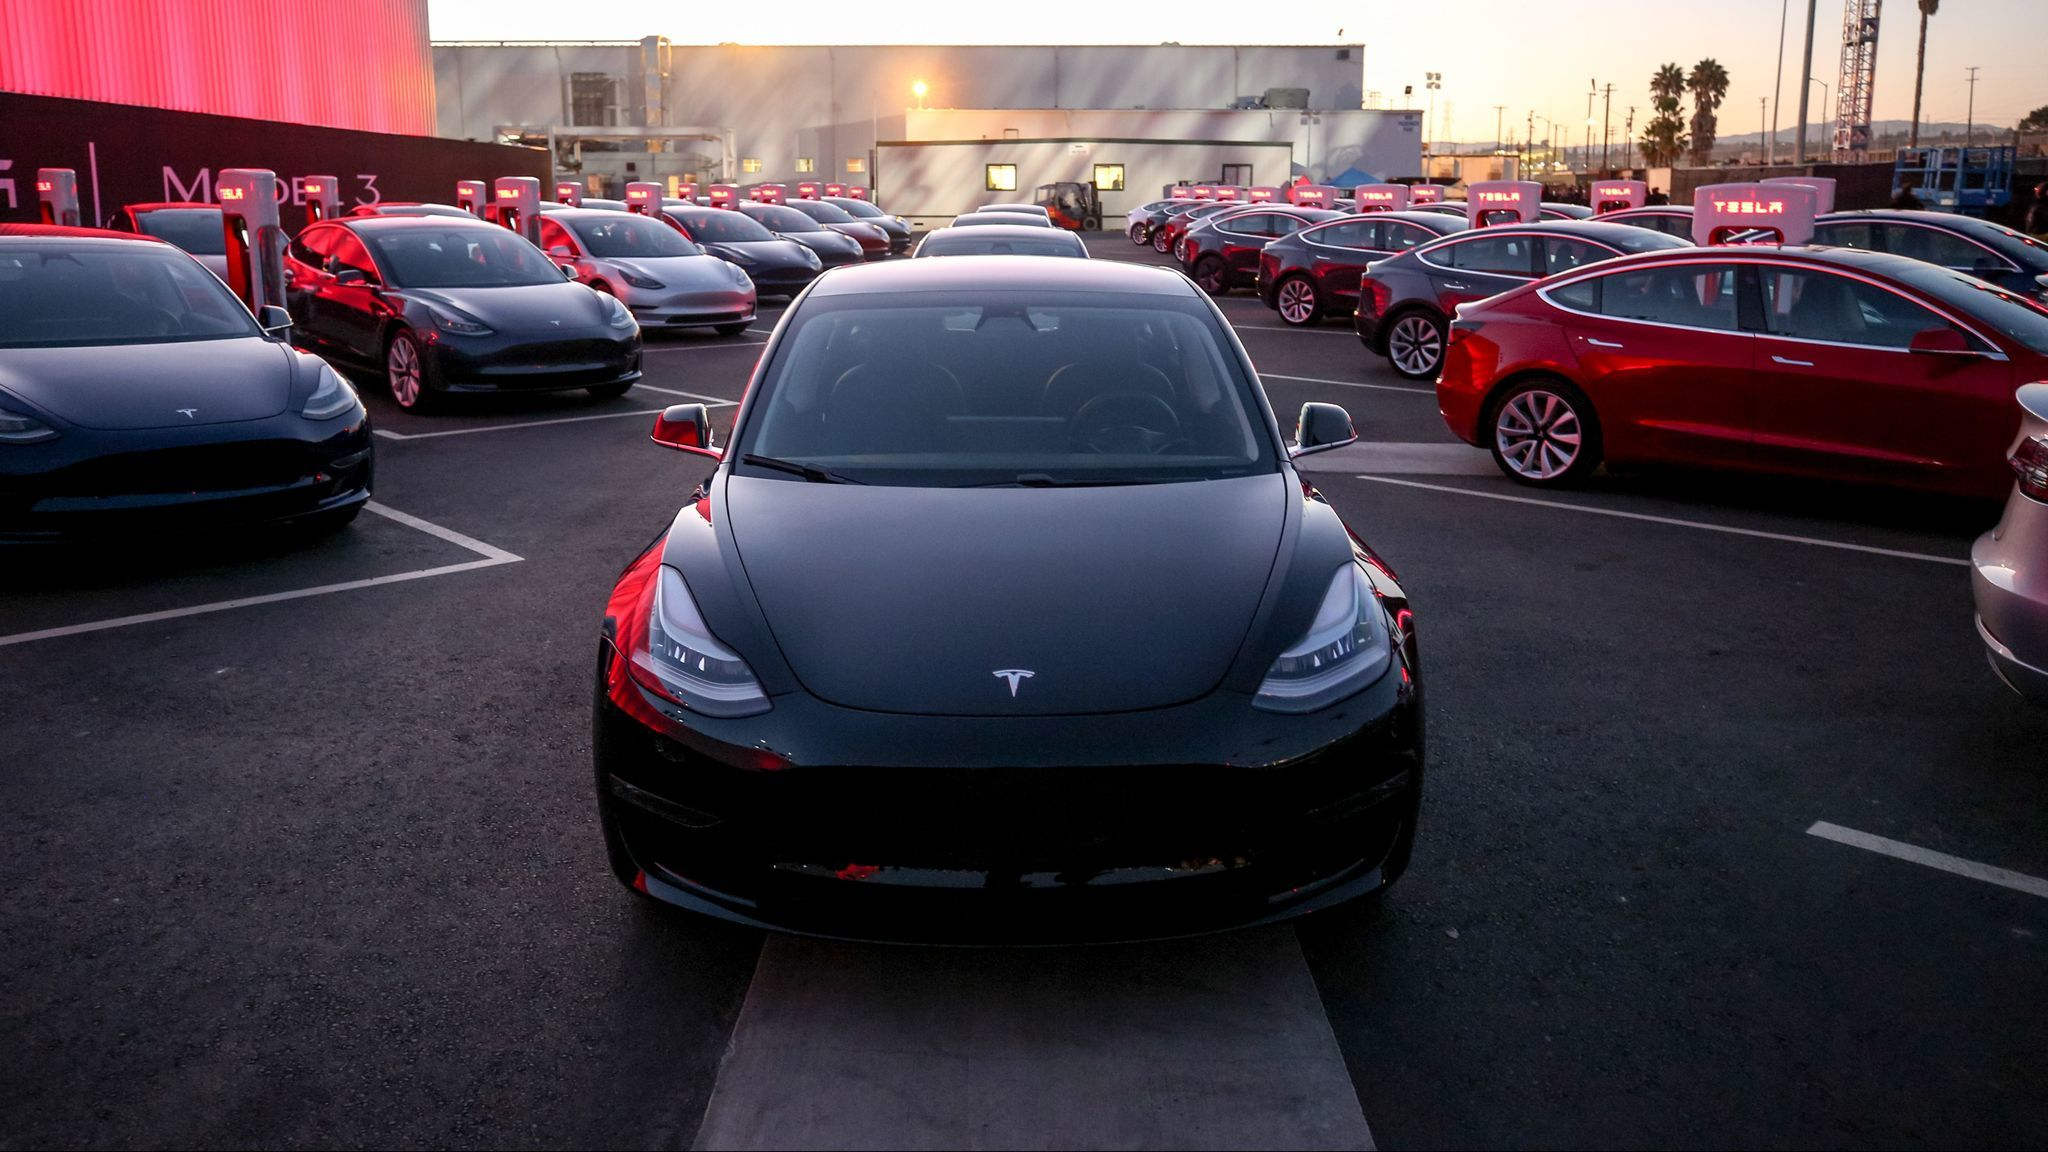 The 35 000 Base Price Of Tesla S Model 3 Car Could Drop By More Than 16 If